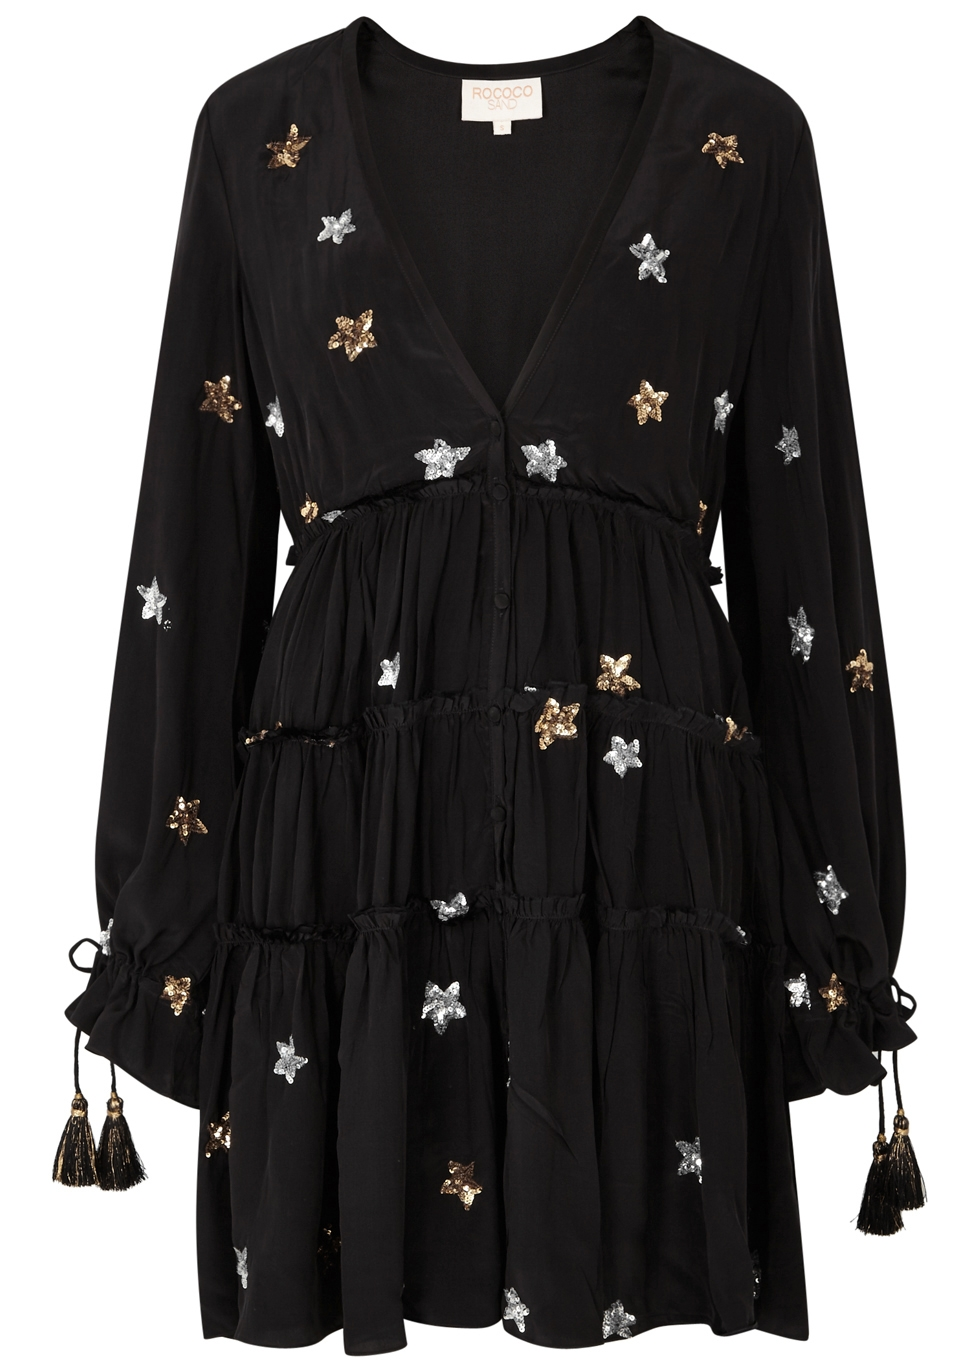 ASTRAL STAR-EMBELLISHED TIERED DRESS